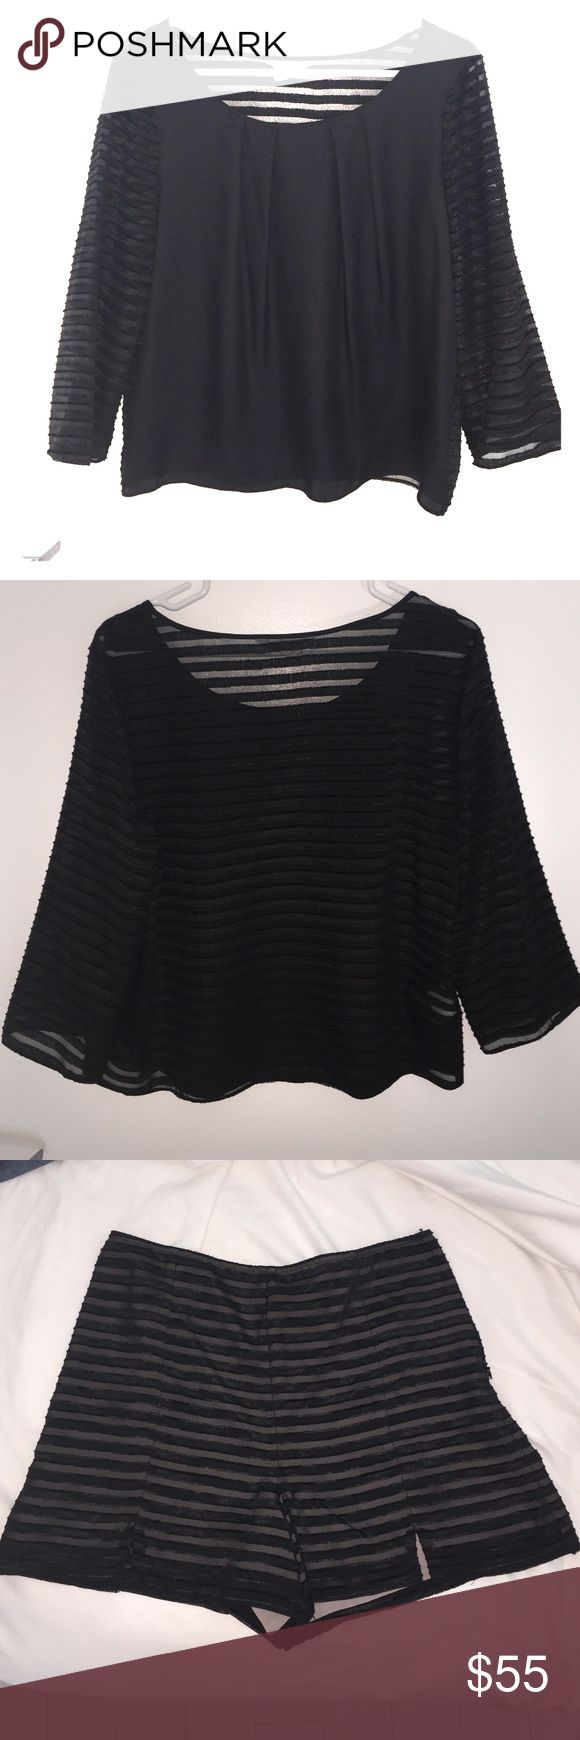 BCBGeneration Two Piece outfit Black striped top size L and black stripped shorts size 8 BCBGeneration Other